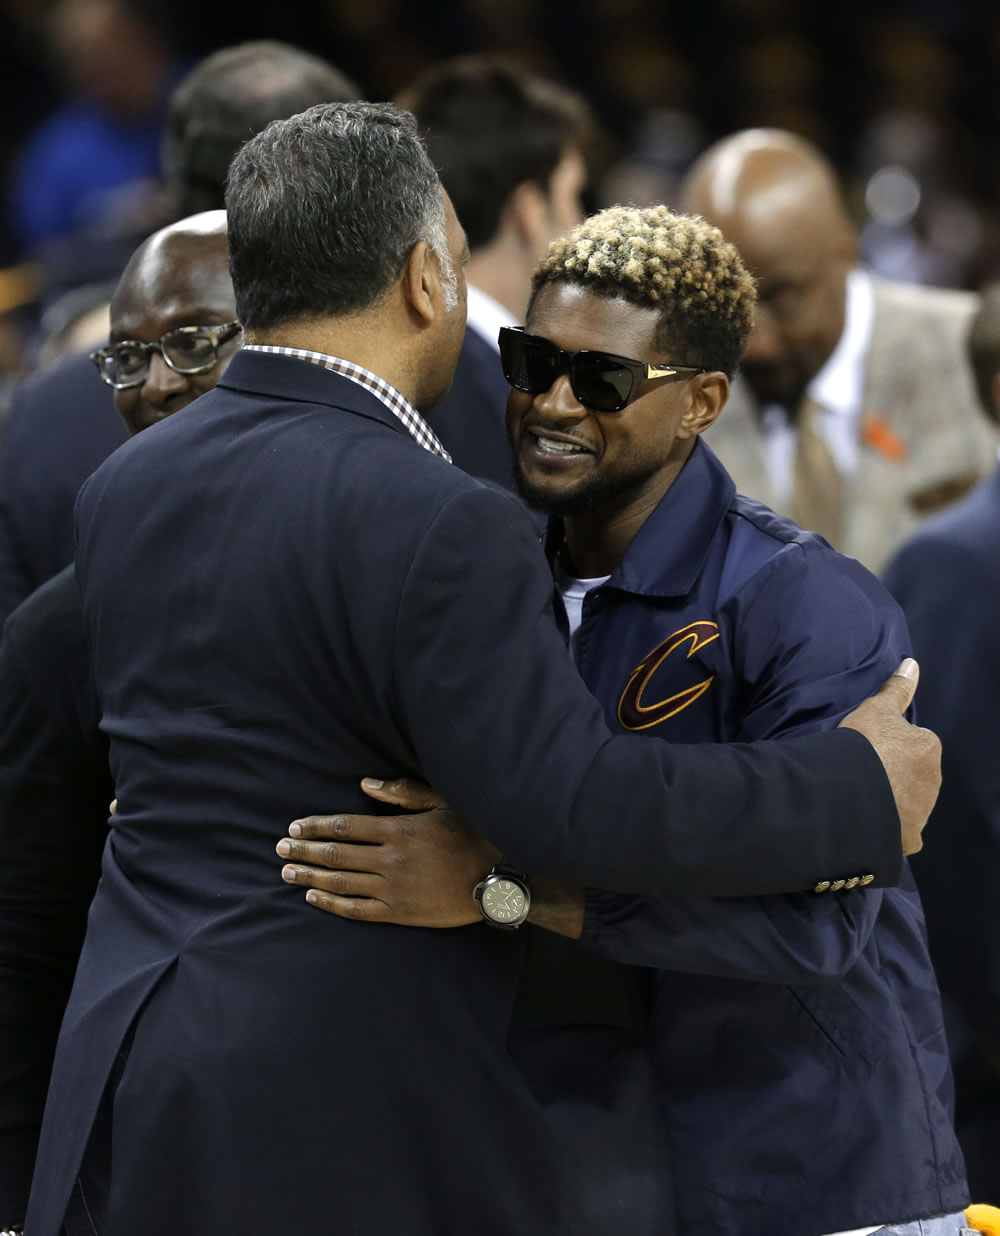 "<div class=""meta image-caption""><div class=""origin-logo origin-image none""><span>none</span></div><span class=""caption-text"">Usher greets the Reverand Jesse Jackson at Quicken Loans Arena during game three of the NBA Finals in Cleveland, Ohio on June 7, 2017. (AP)</span></div>"